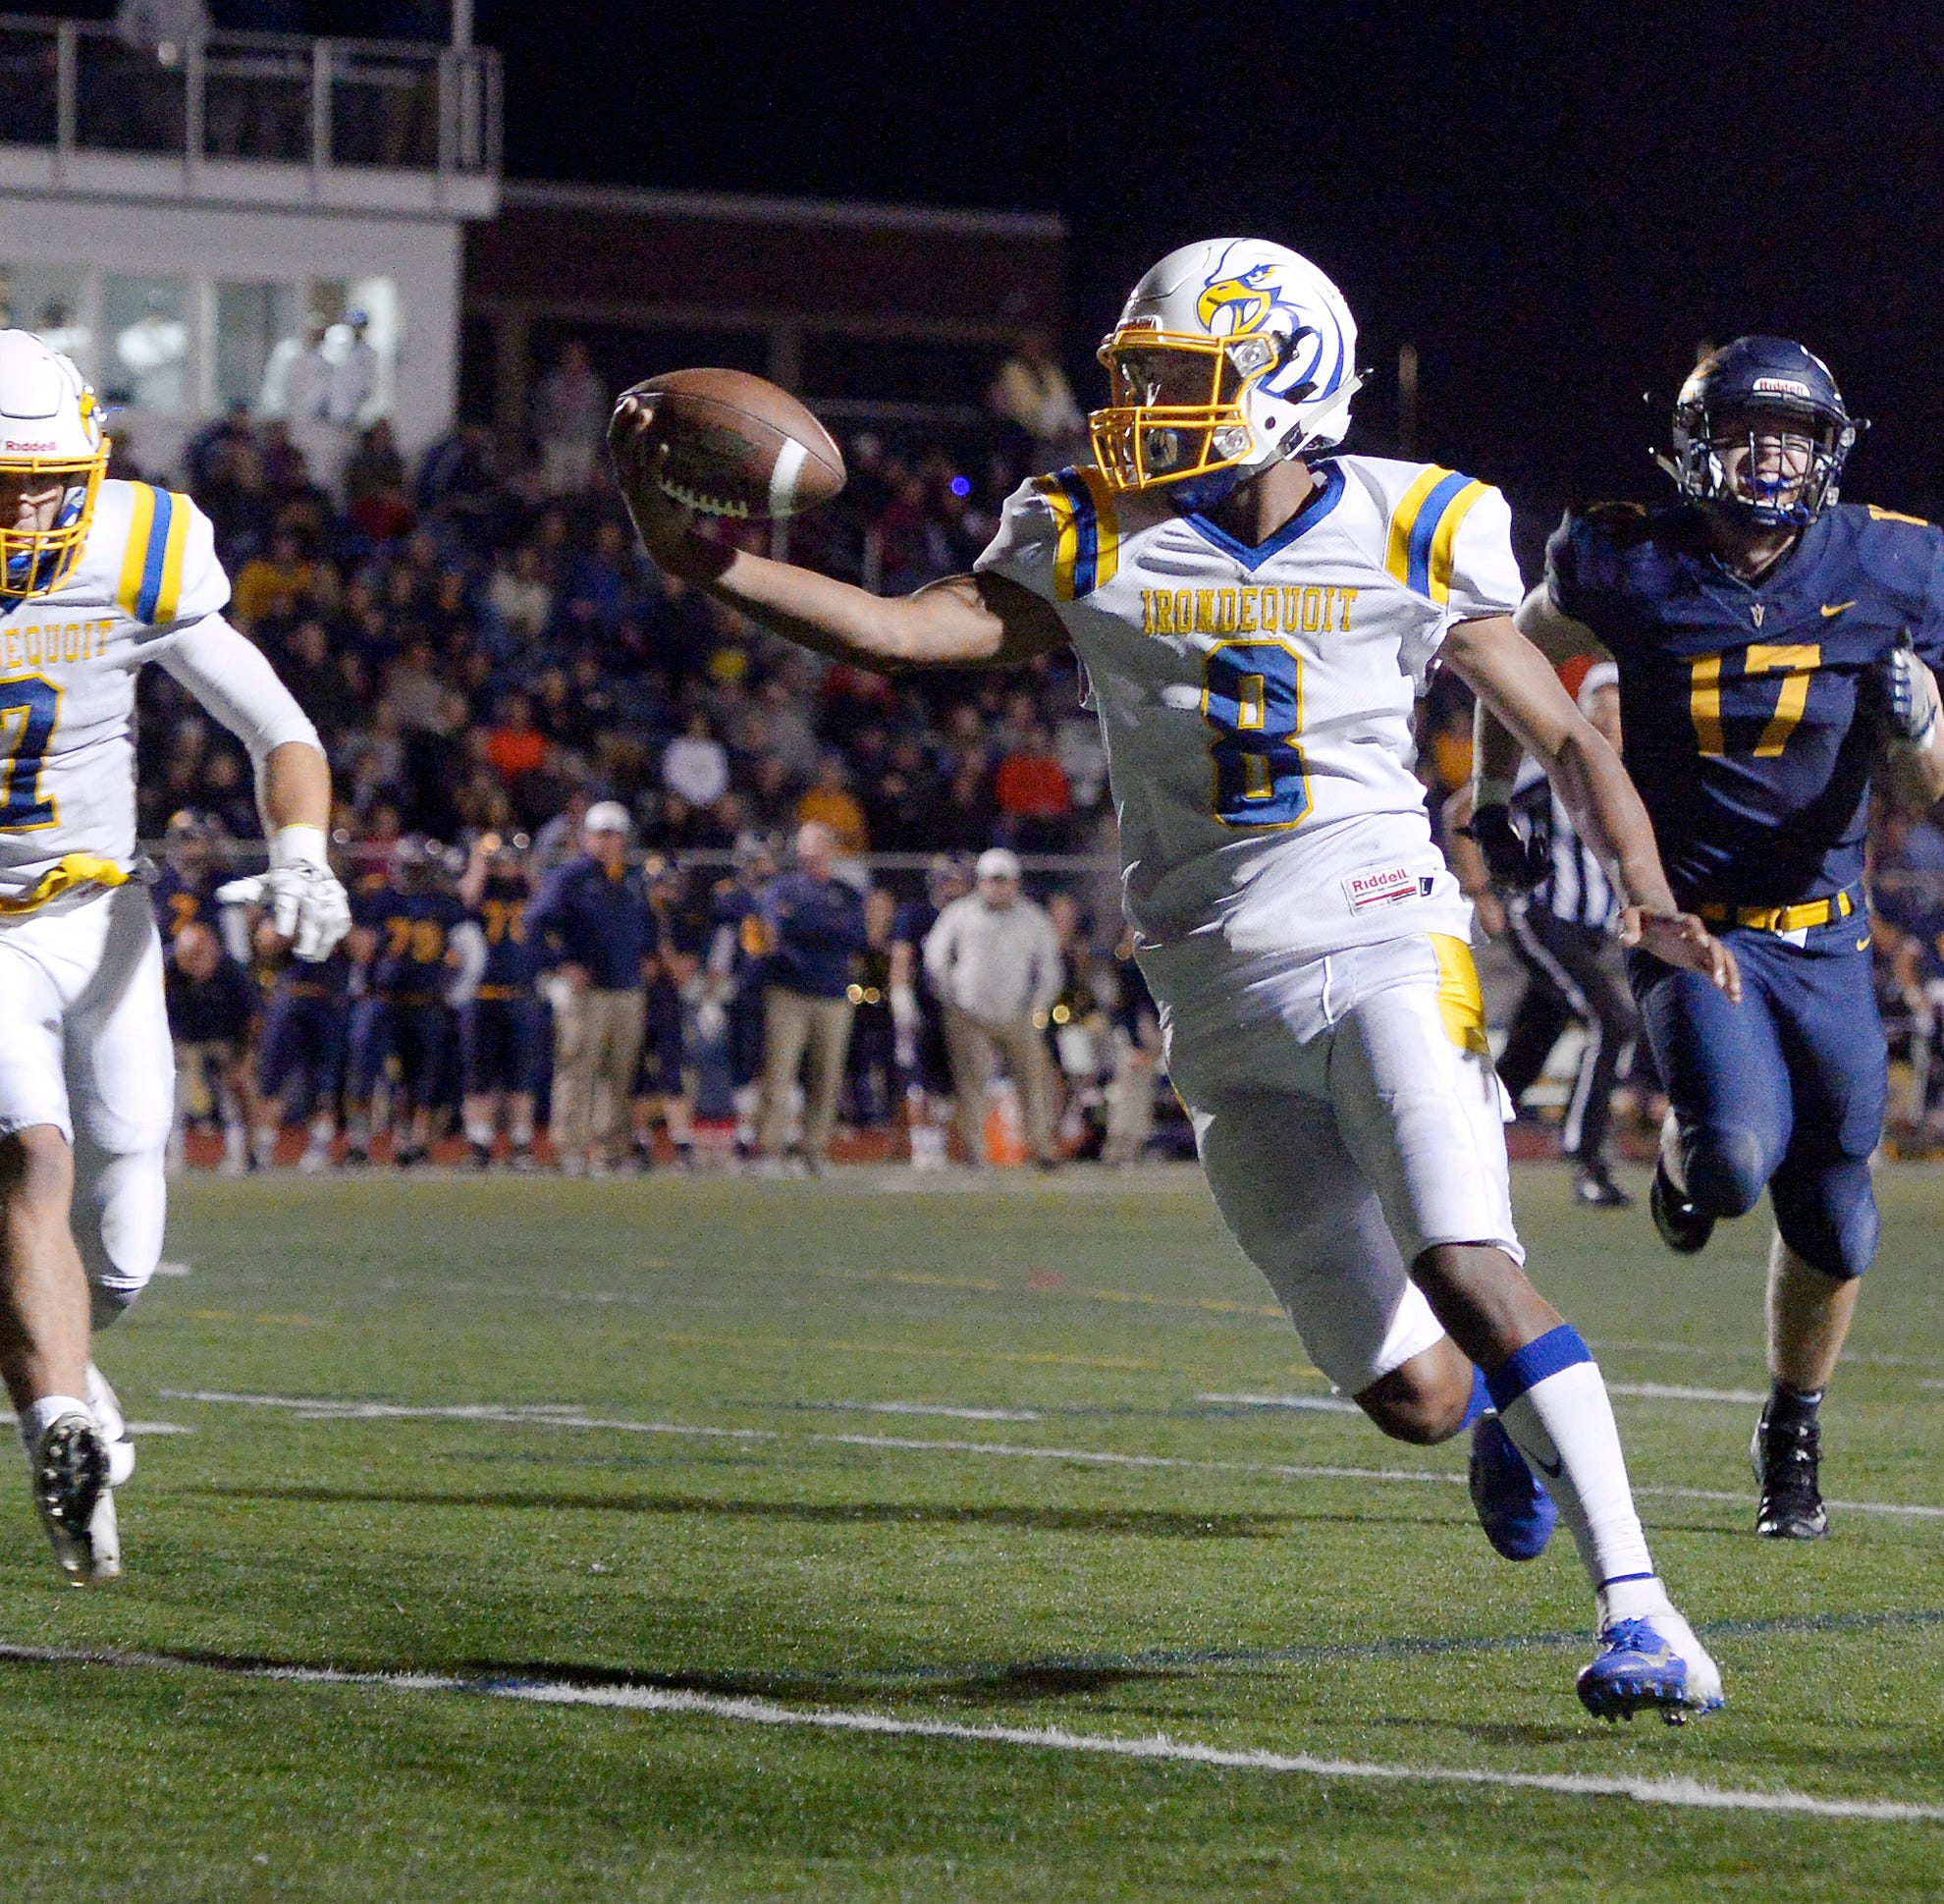 Freddy June's late-game heroics lead Irondequoit over Victor in state-ranked clash